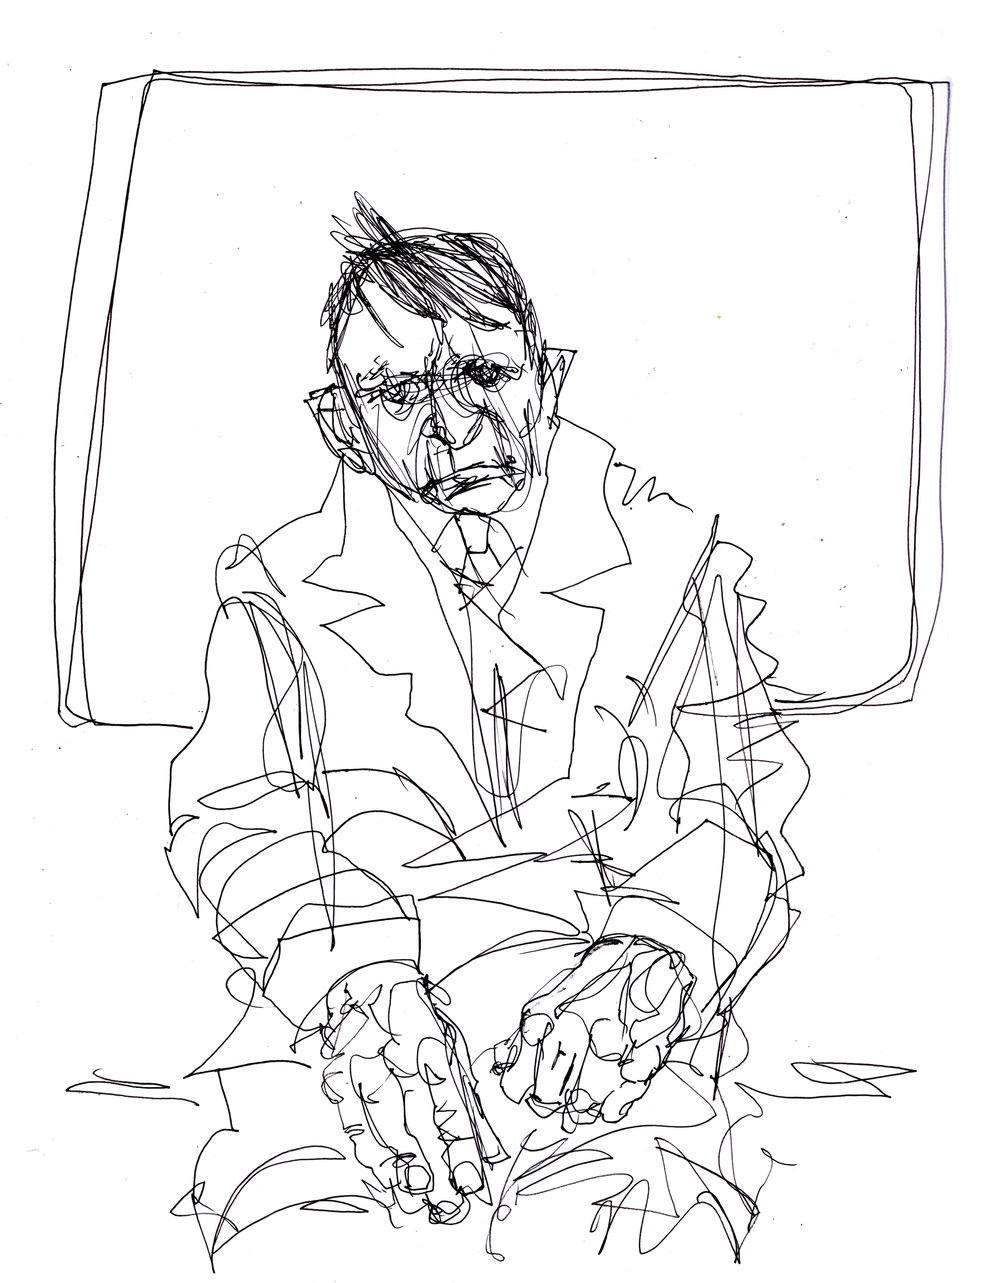 Man on Tube